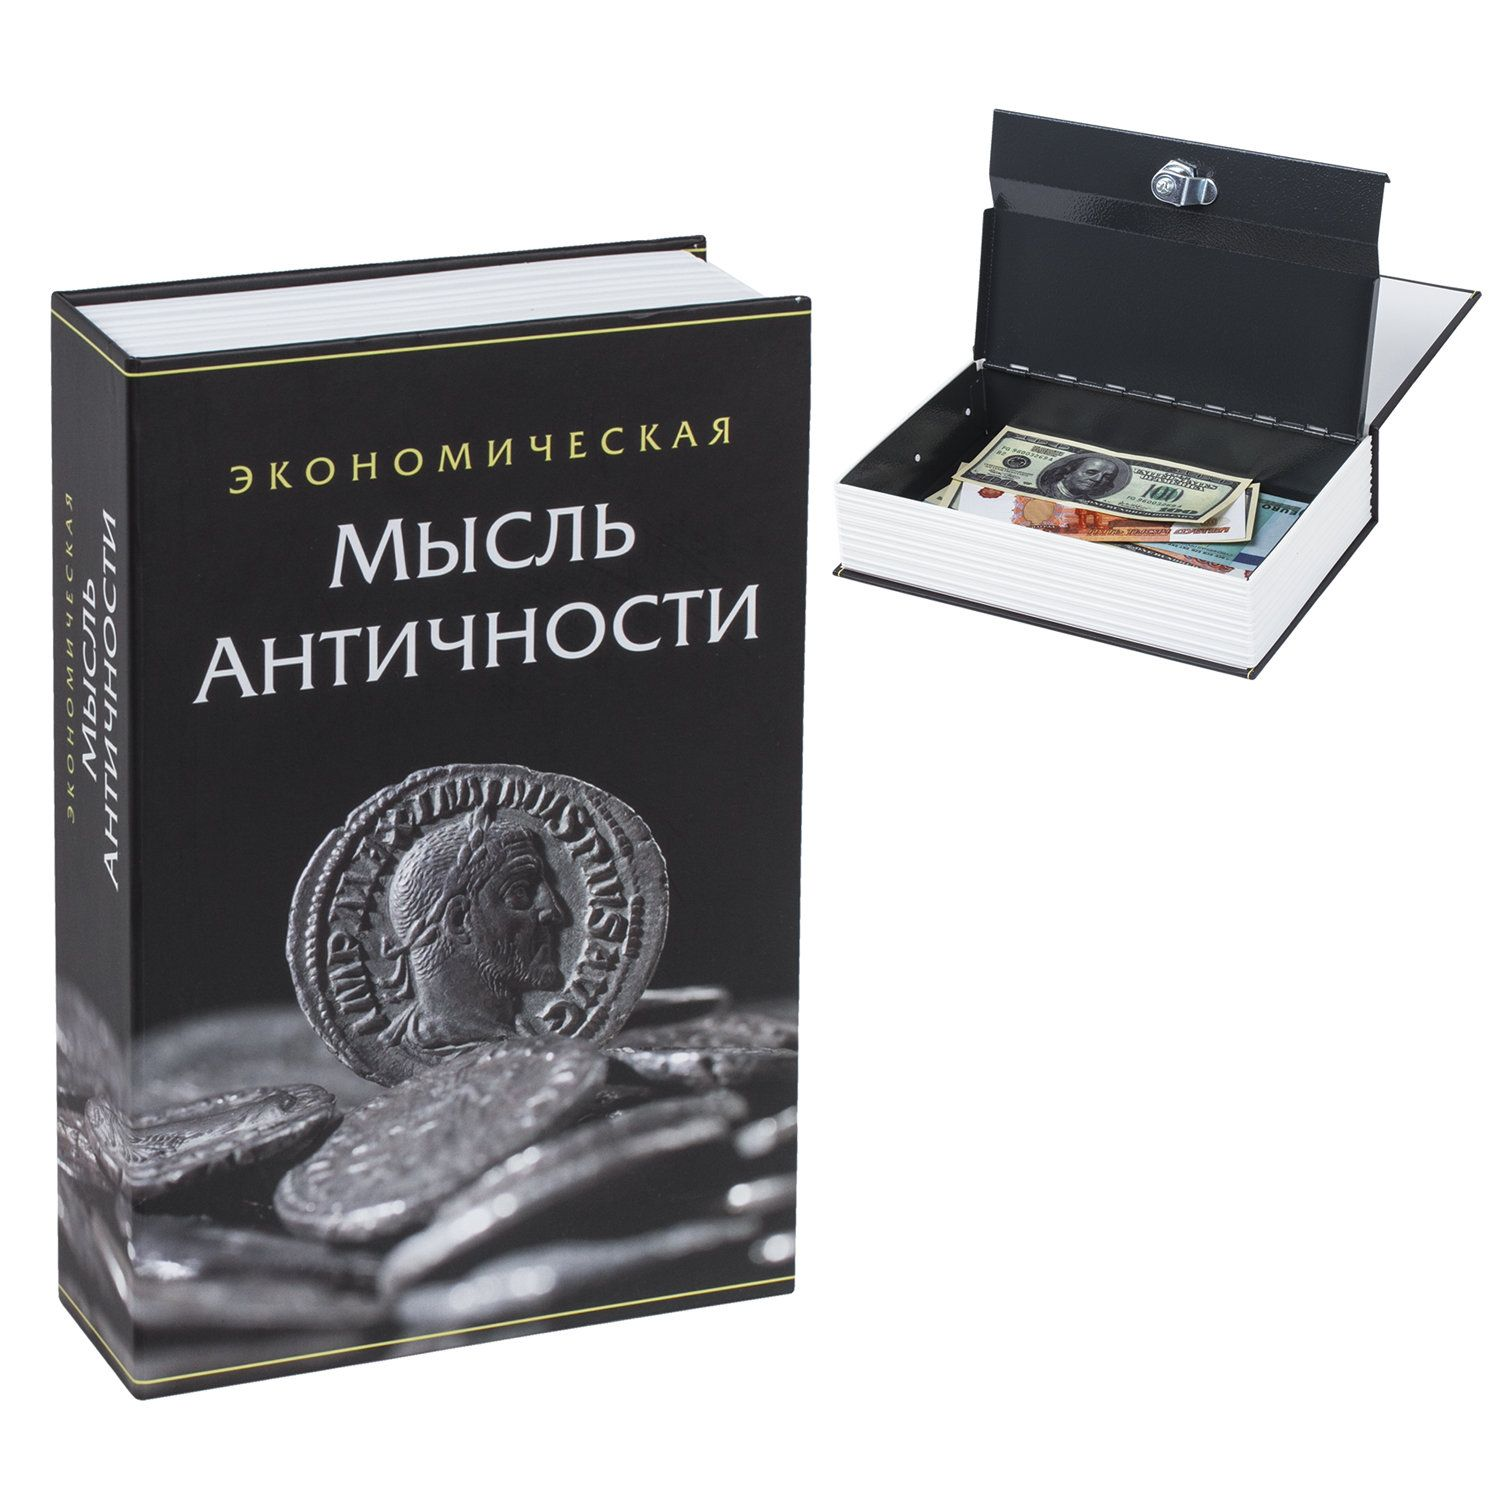 "Safe-book ""Economic thought of antiquity"", 55x155x240 mm, key lock, BRAUBERG"